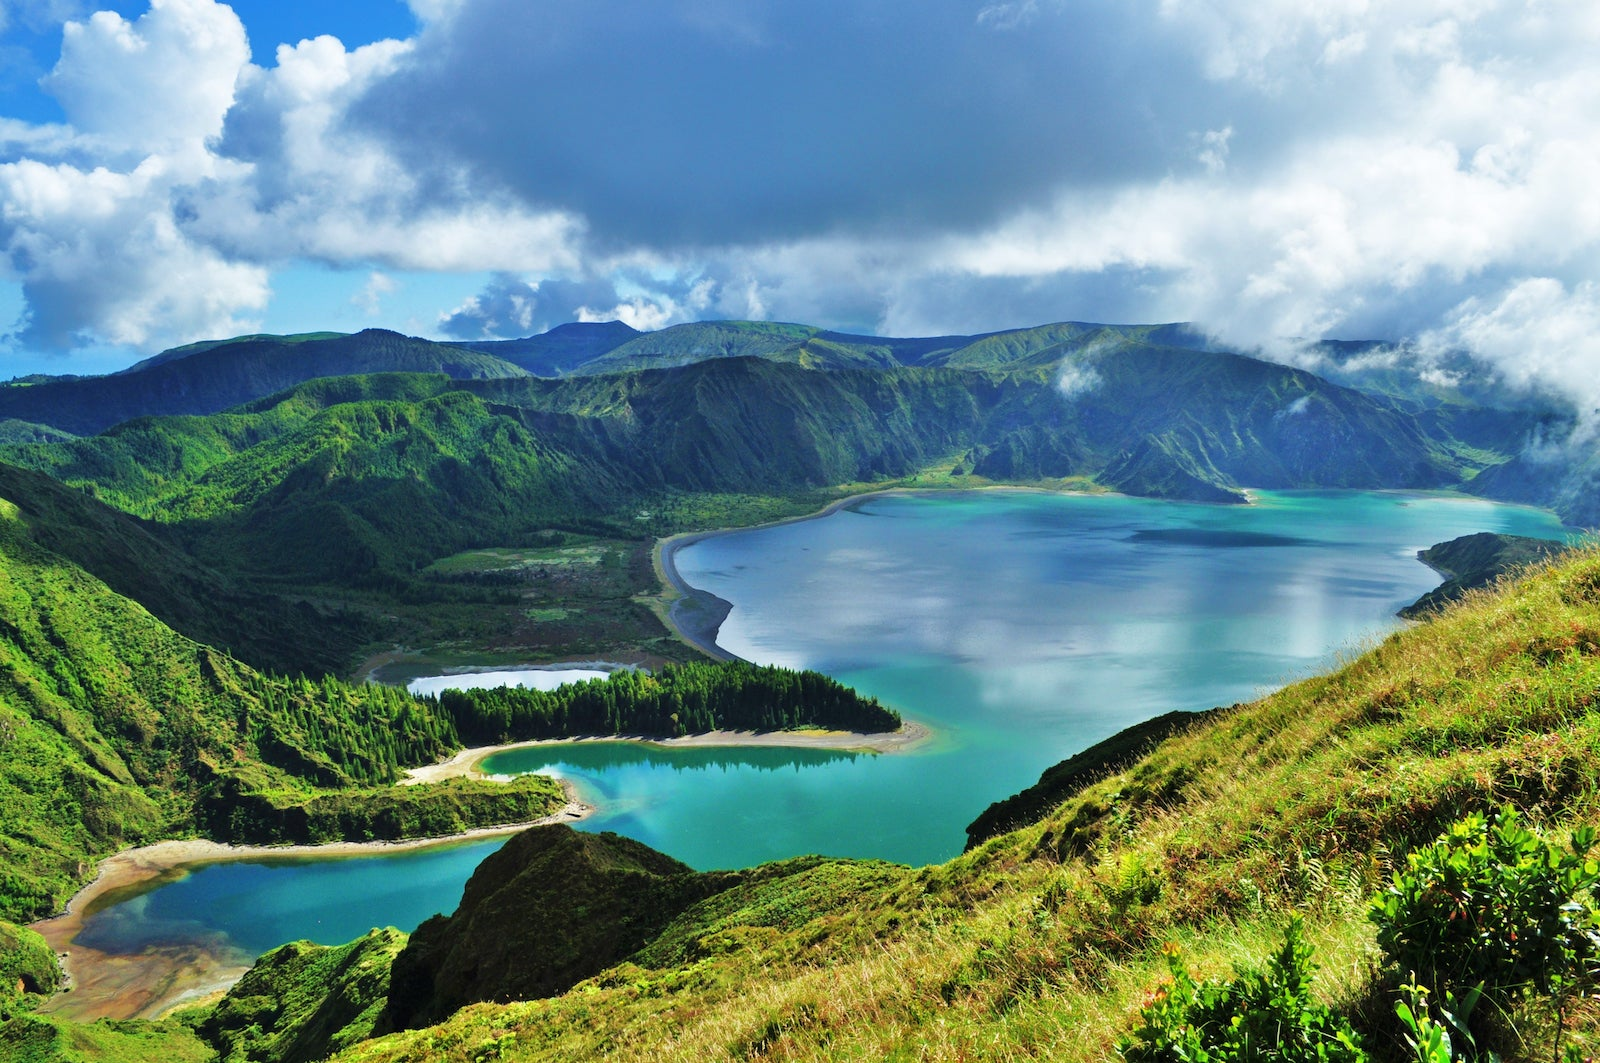 British Airways will add direct flights from London to the Azores next summer - The Points Guy UK